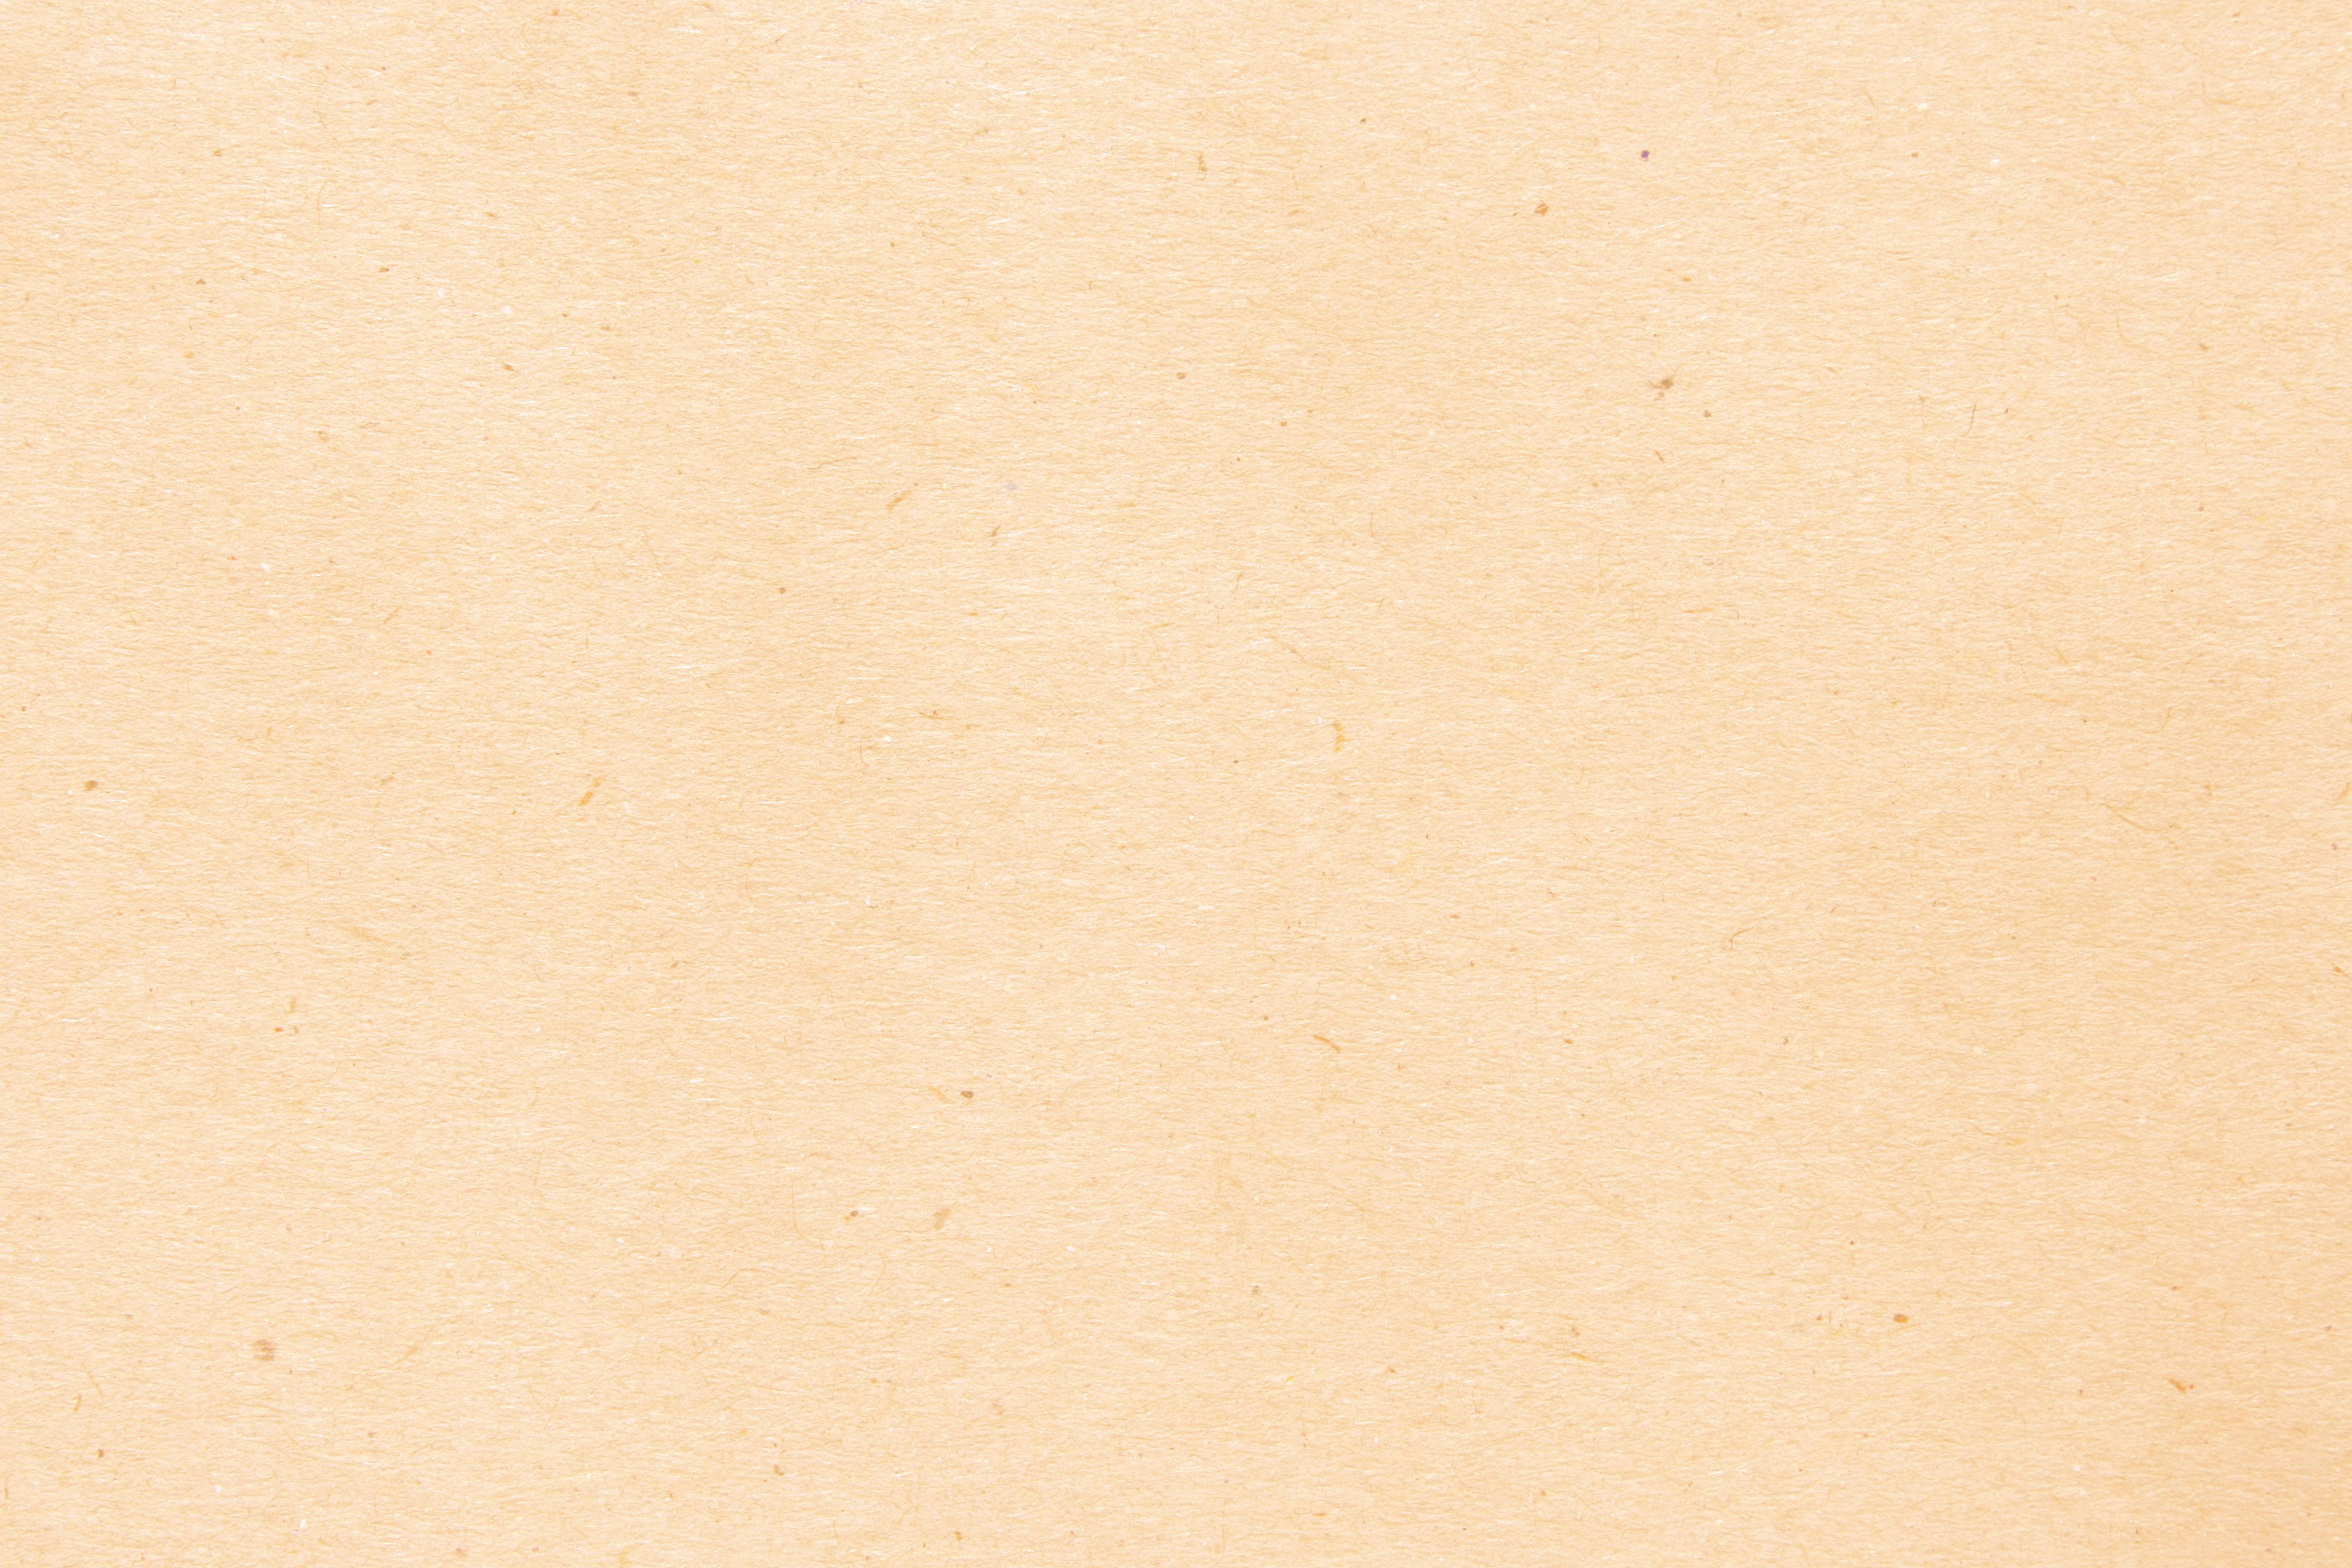 Peach Colored Paper Texture With Flecks Picture Free